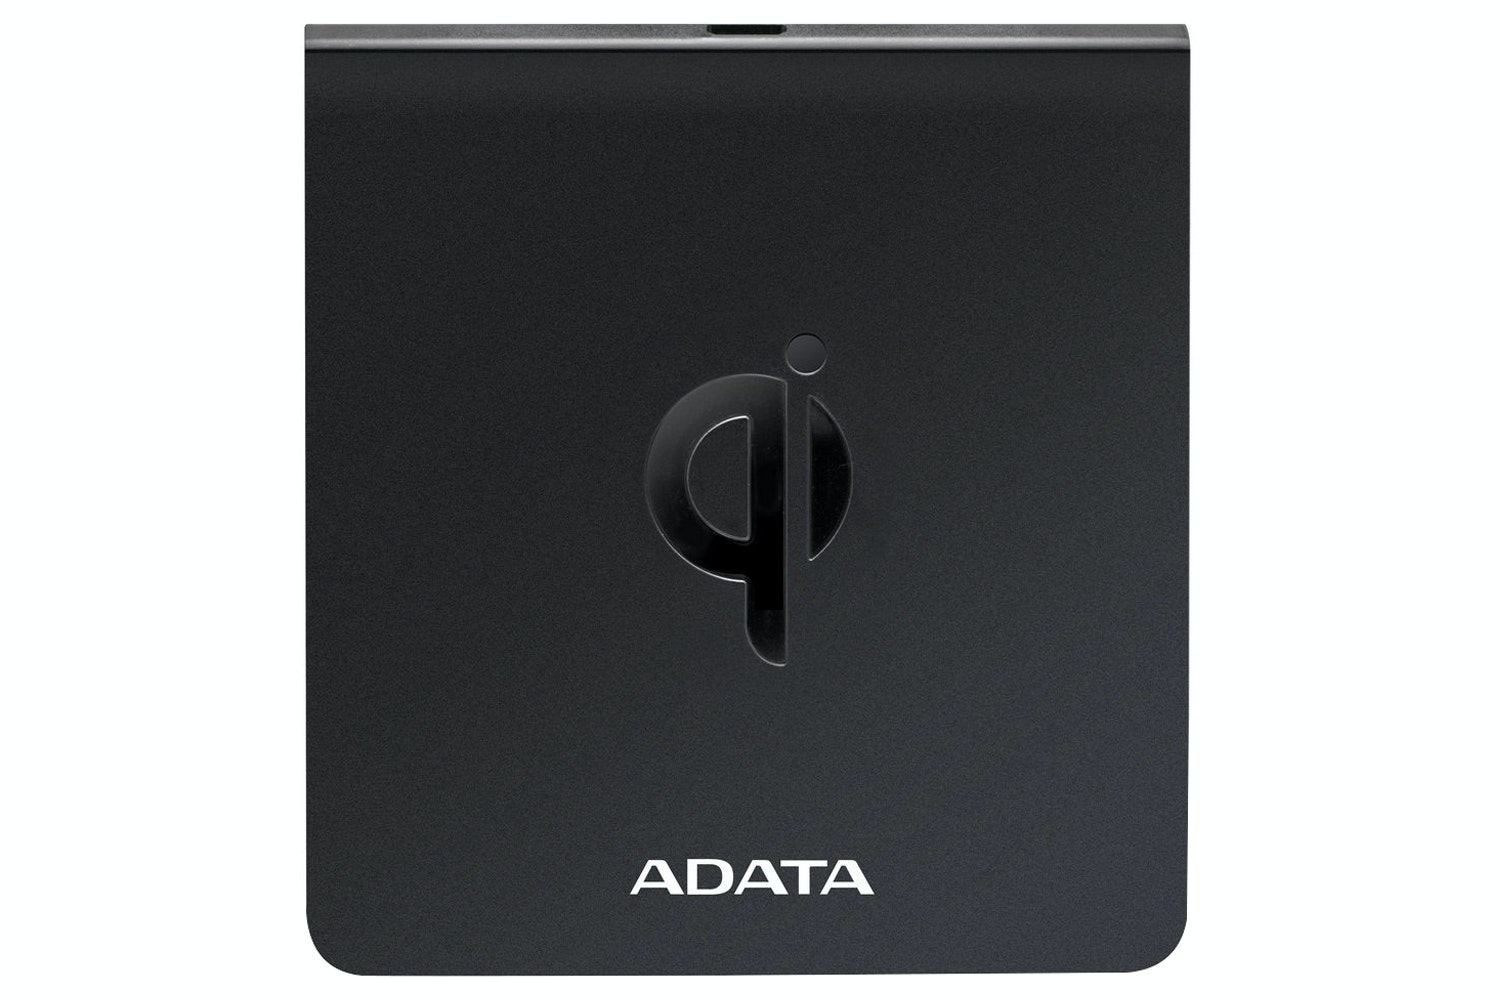 ADATA CW0050 Wireless Charging Pad | Black